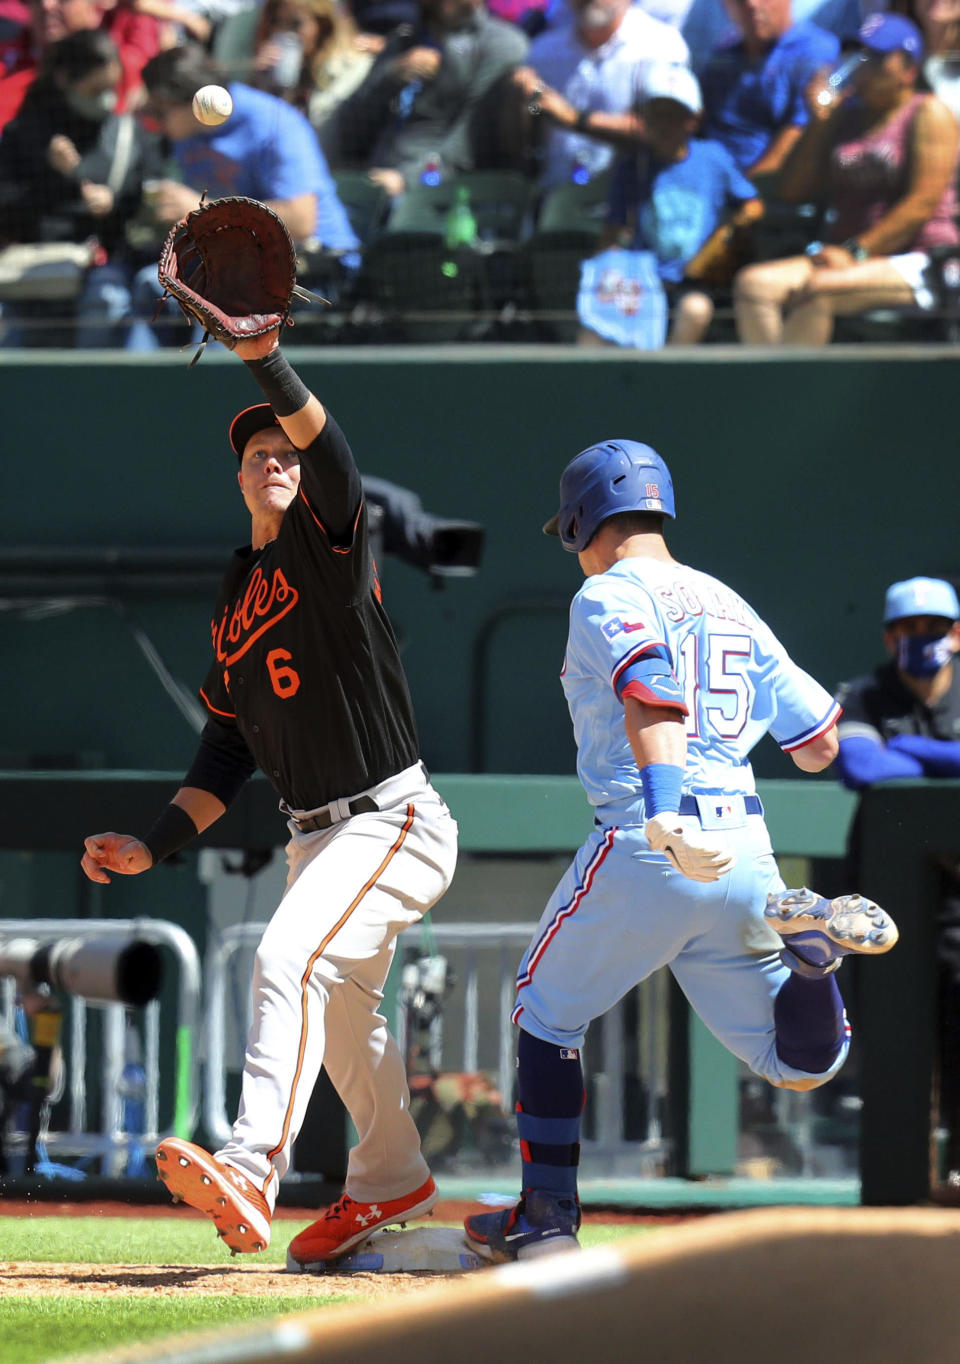 Baltimore Orioles third baseman Ryan Mountcastle (6) reaches for the ball as Texas Rangers second baseman Nick Solak (15) beats out the throw in the sixth inning during a baseball game on Sunday, April 18, 2021, in Dallas. (AP Photo/Richard W. Rodriguez)